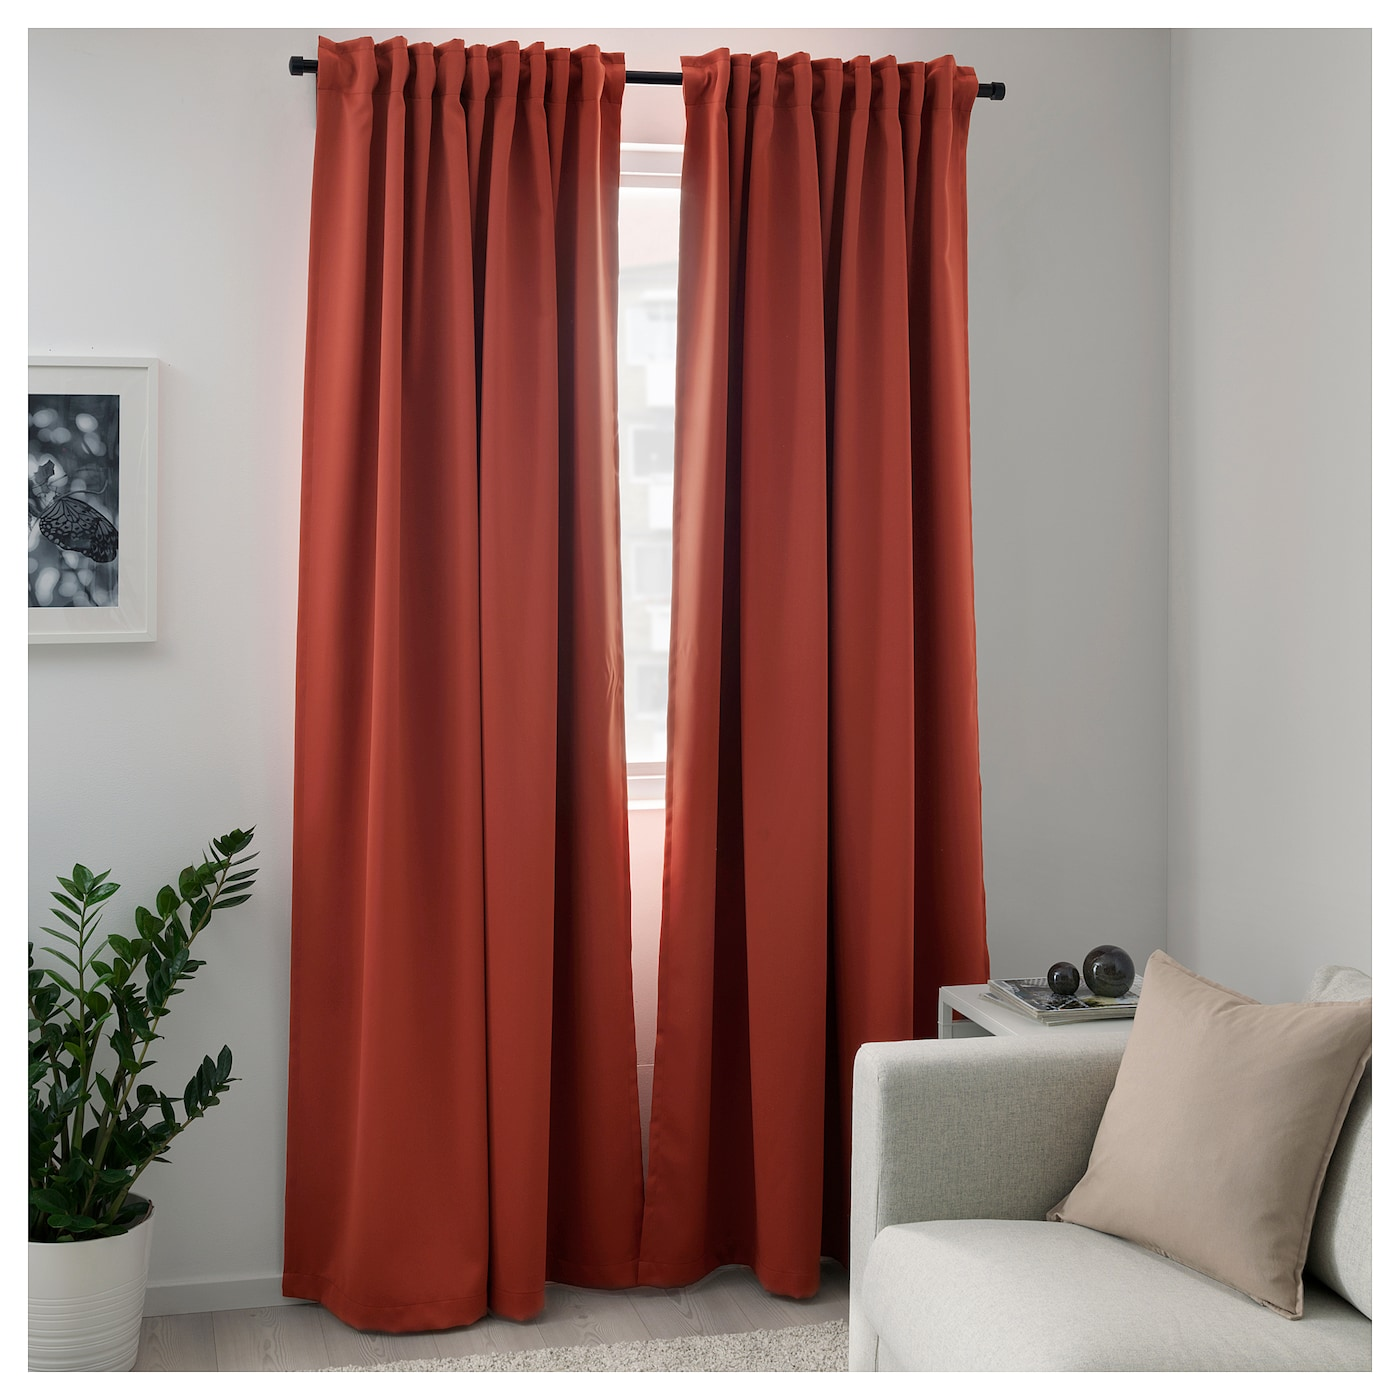 IKEA MAJGULL block-out curtains, 1 pair